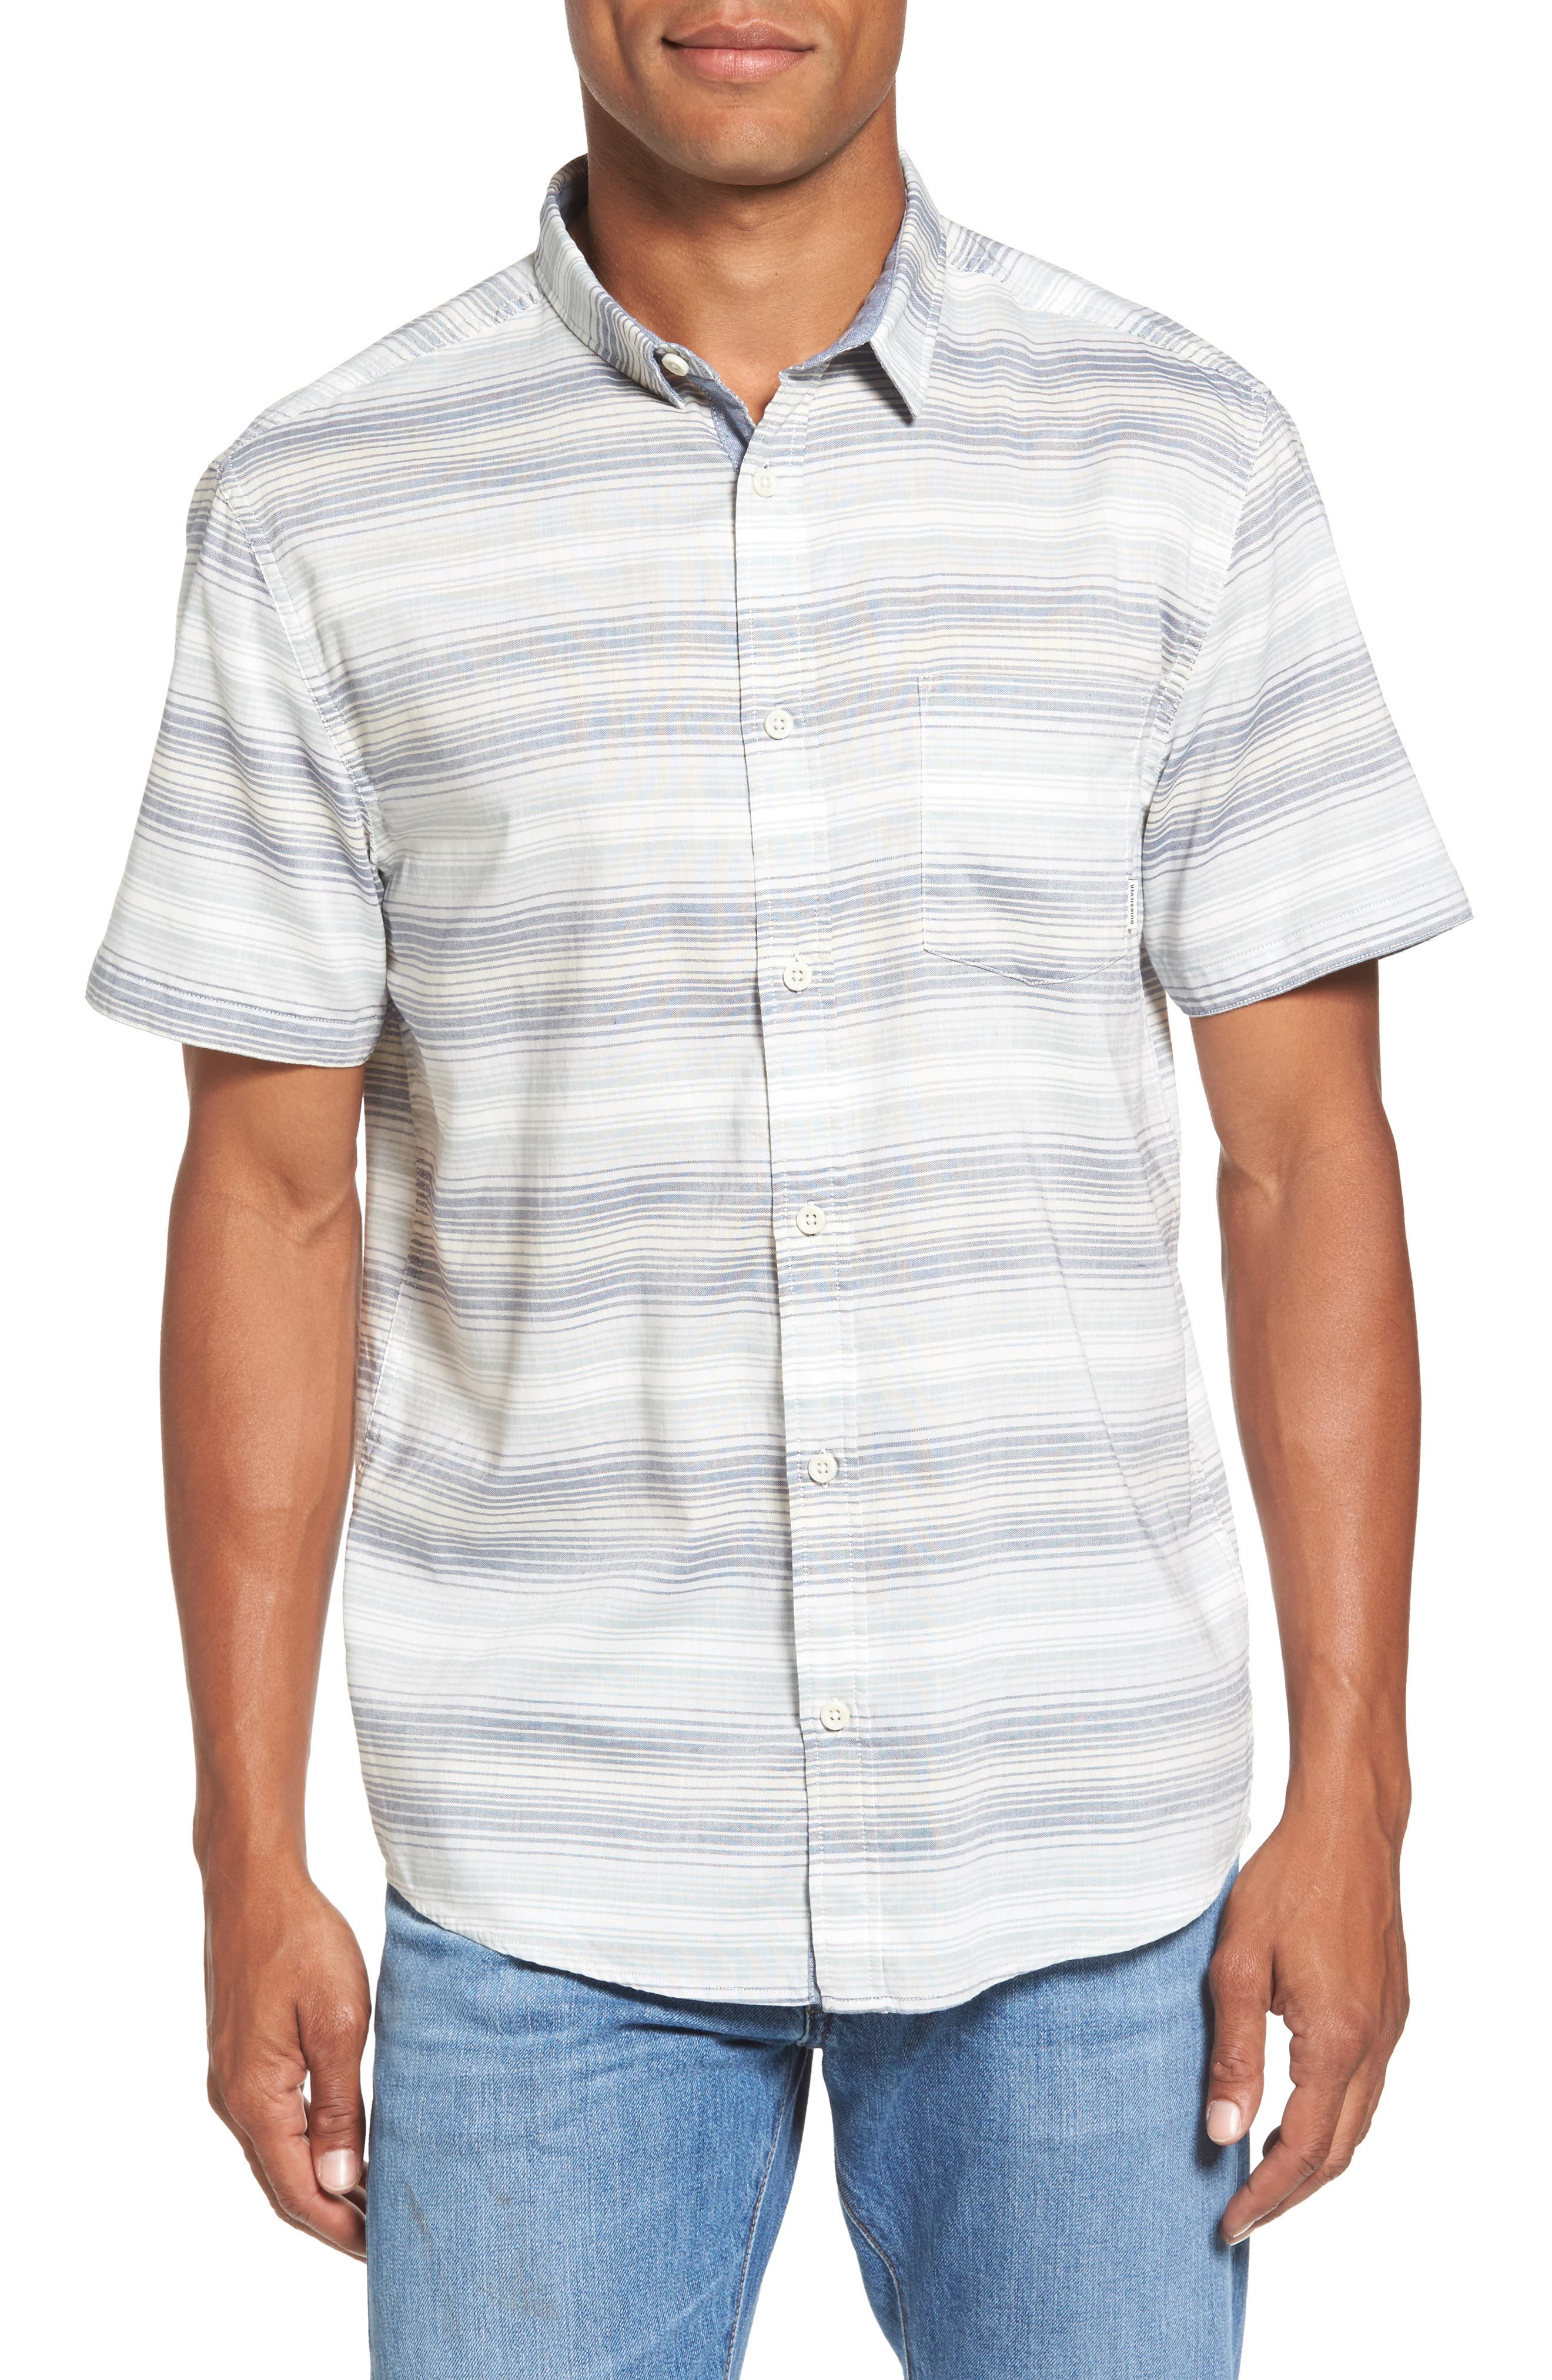 Quiksilver Aventail Stripe Shirt